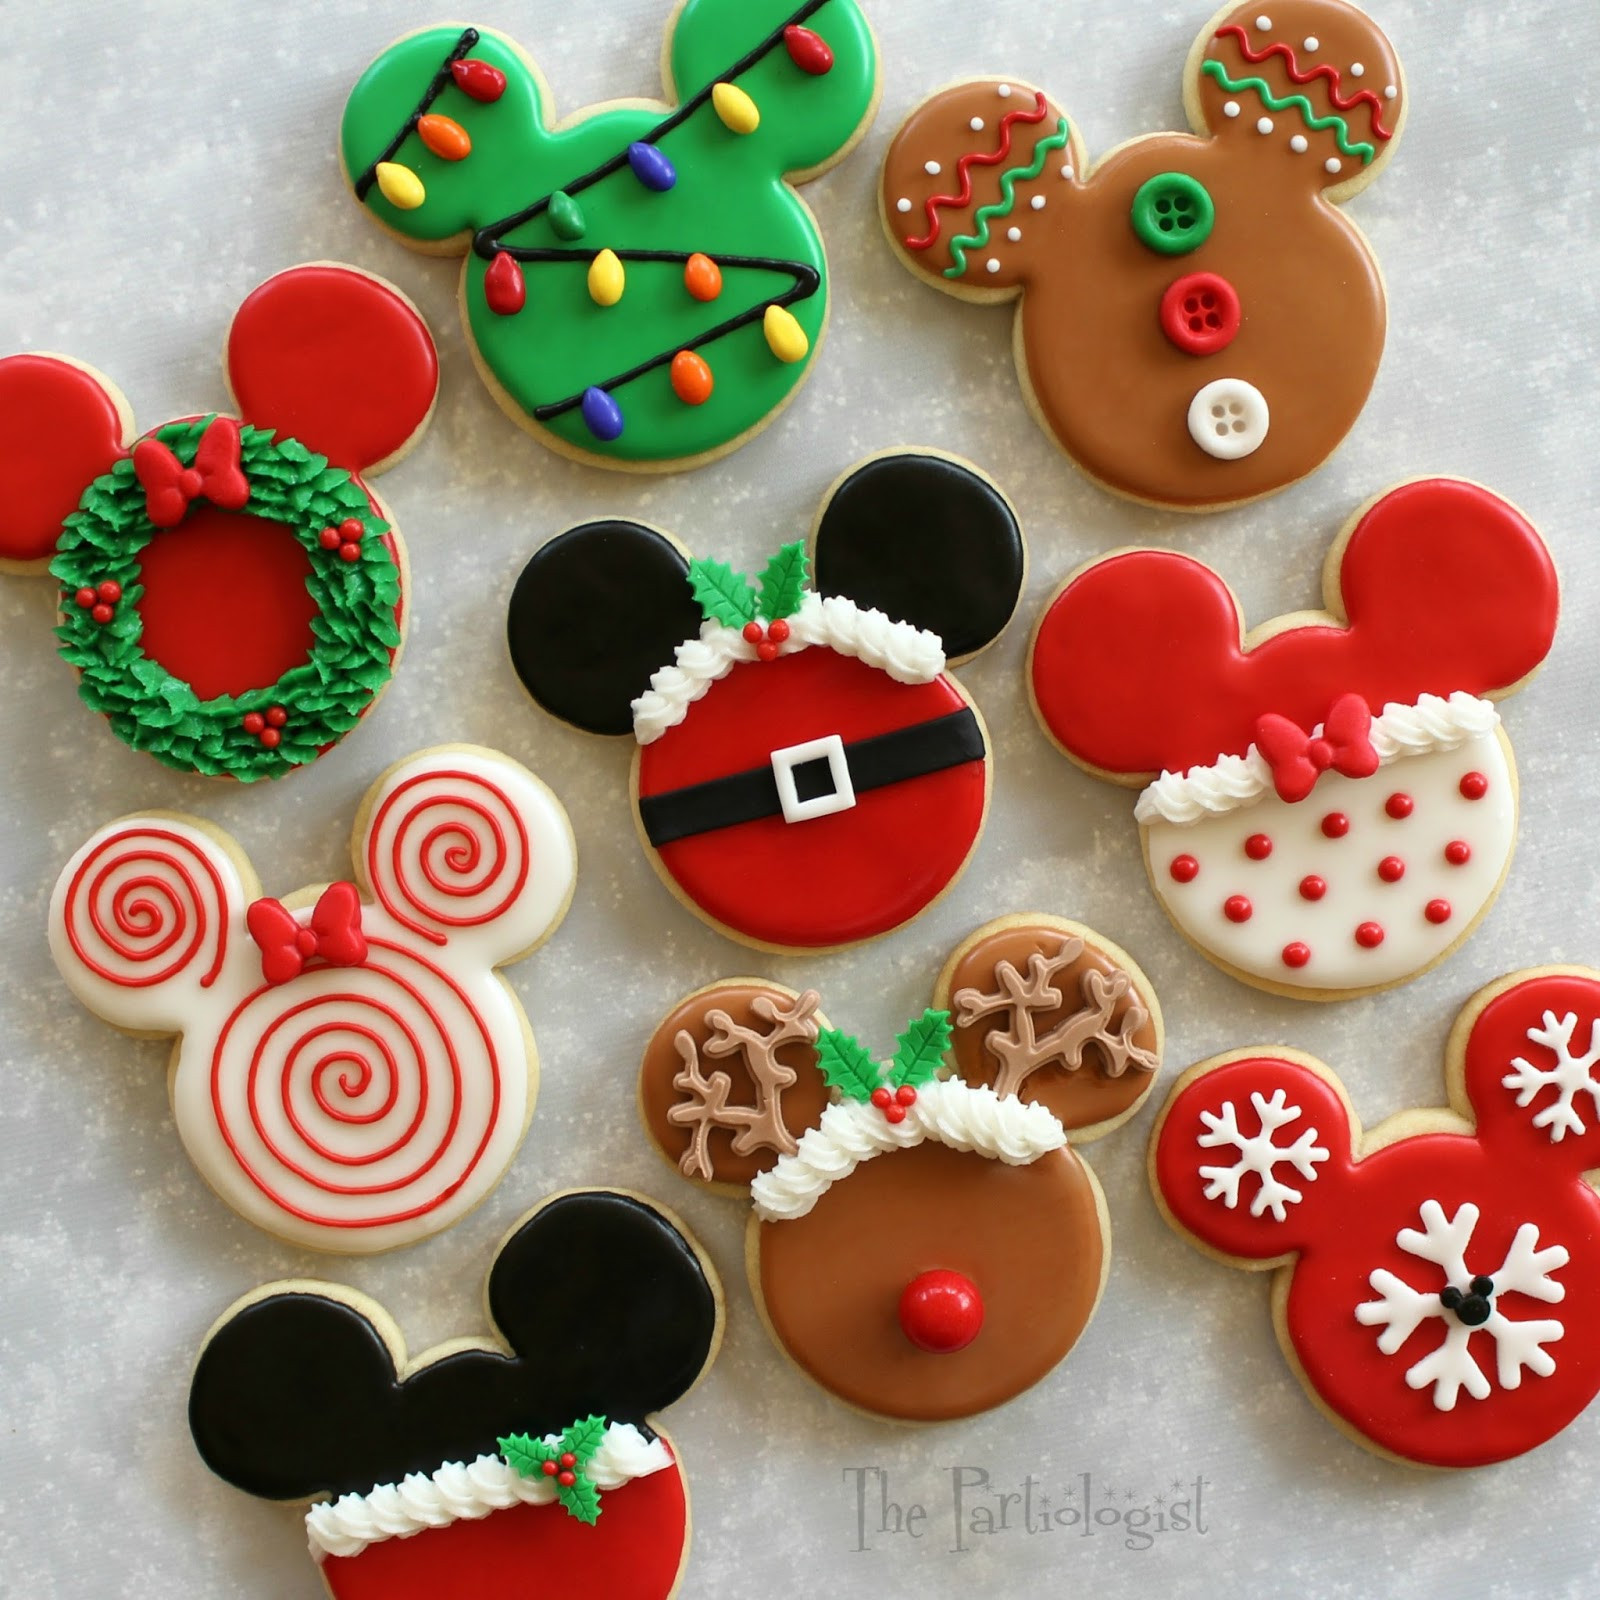 Baking Christmas Cookies  The Partiologist Disney Themed Christmas Cookies